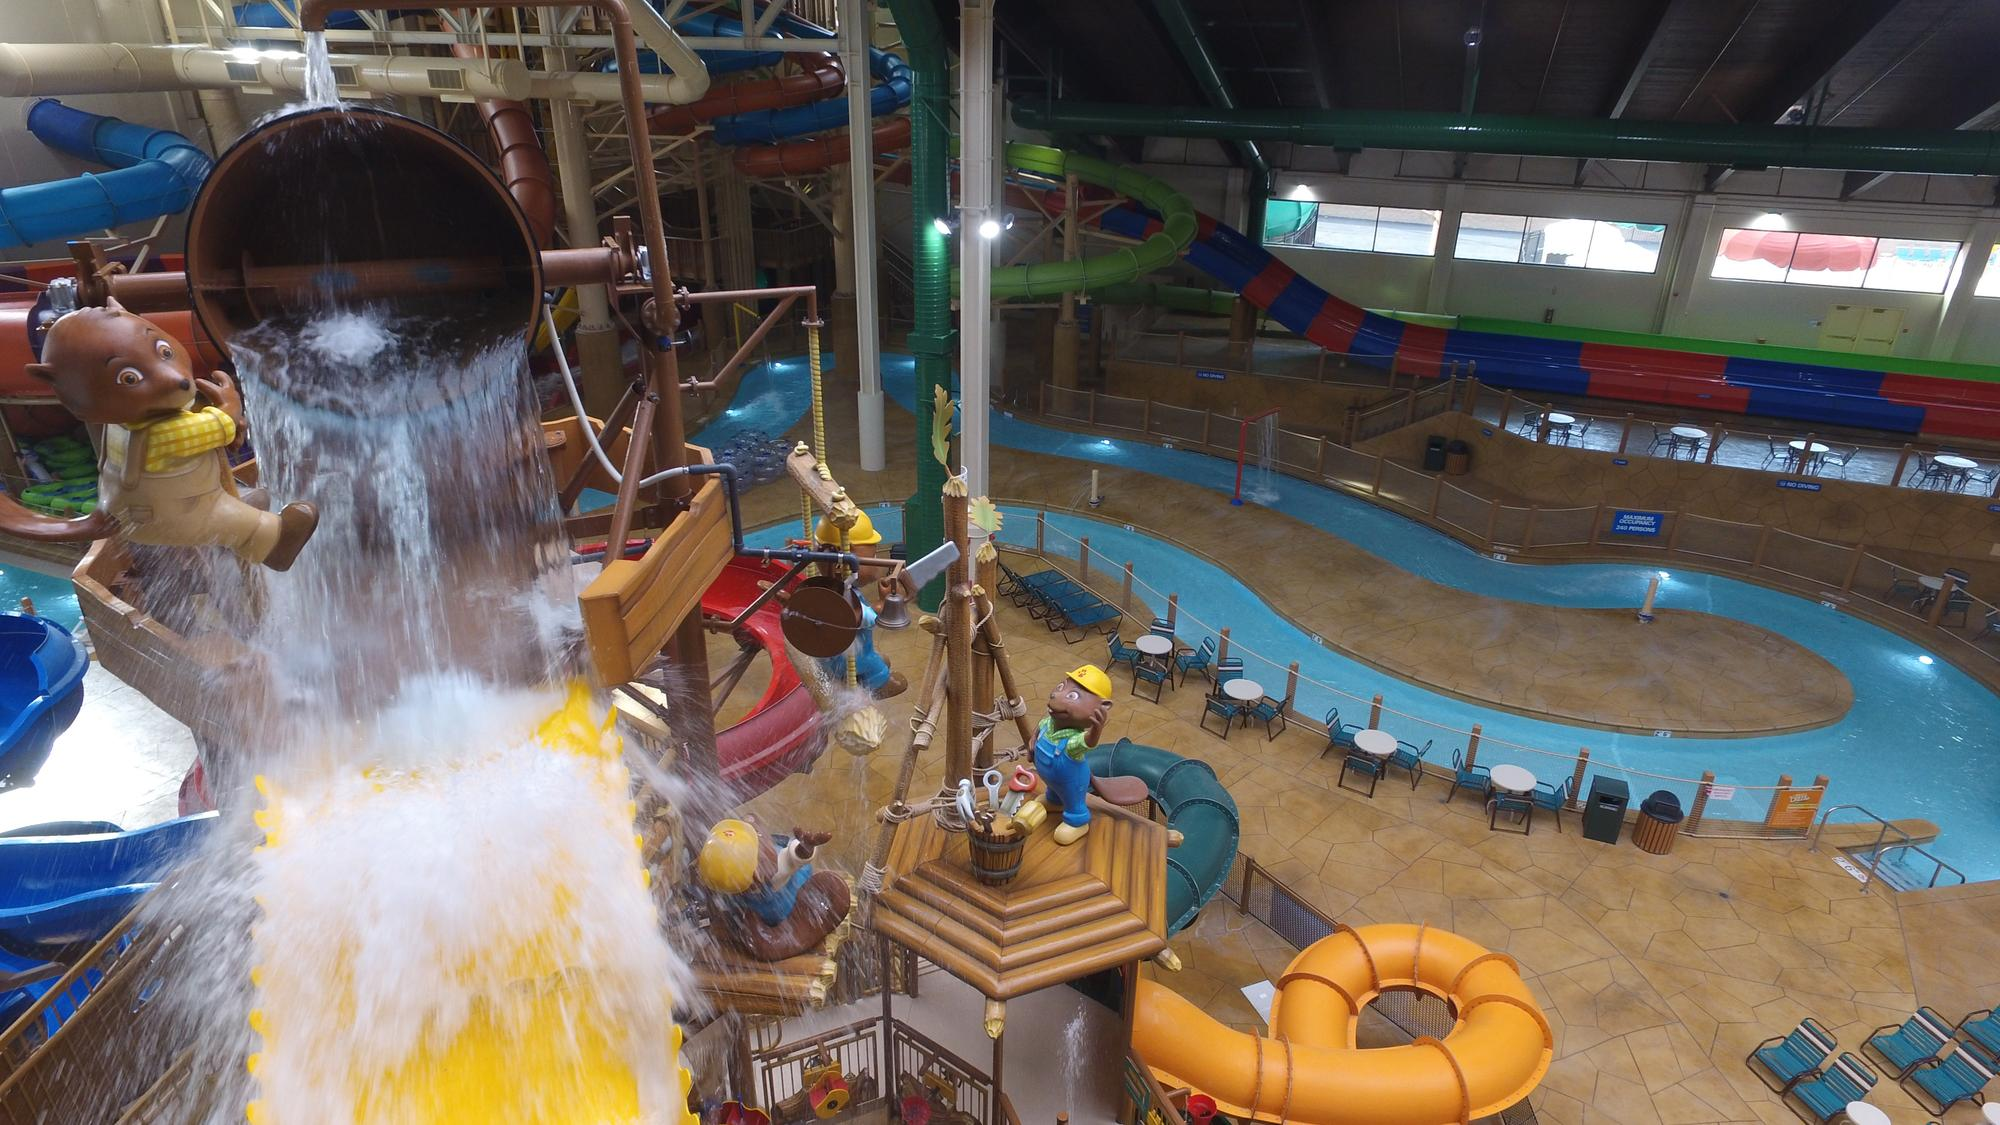 10 Best Water Parks of 2016 | Parents